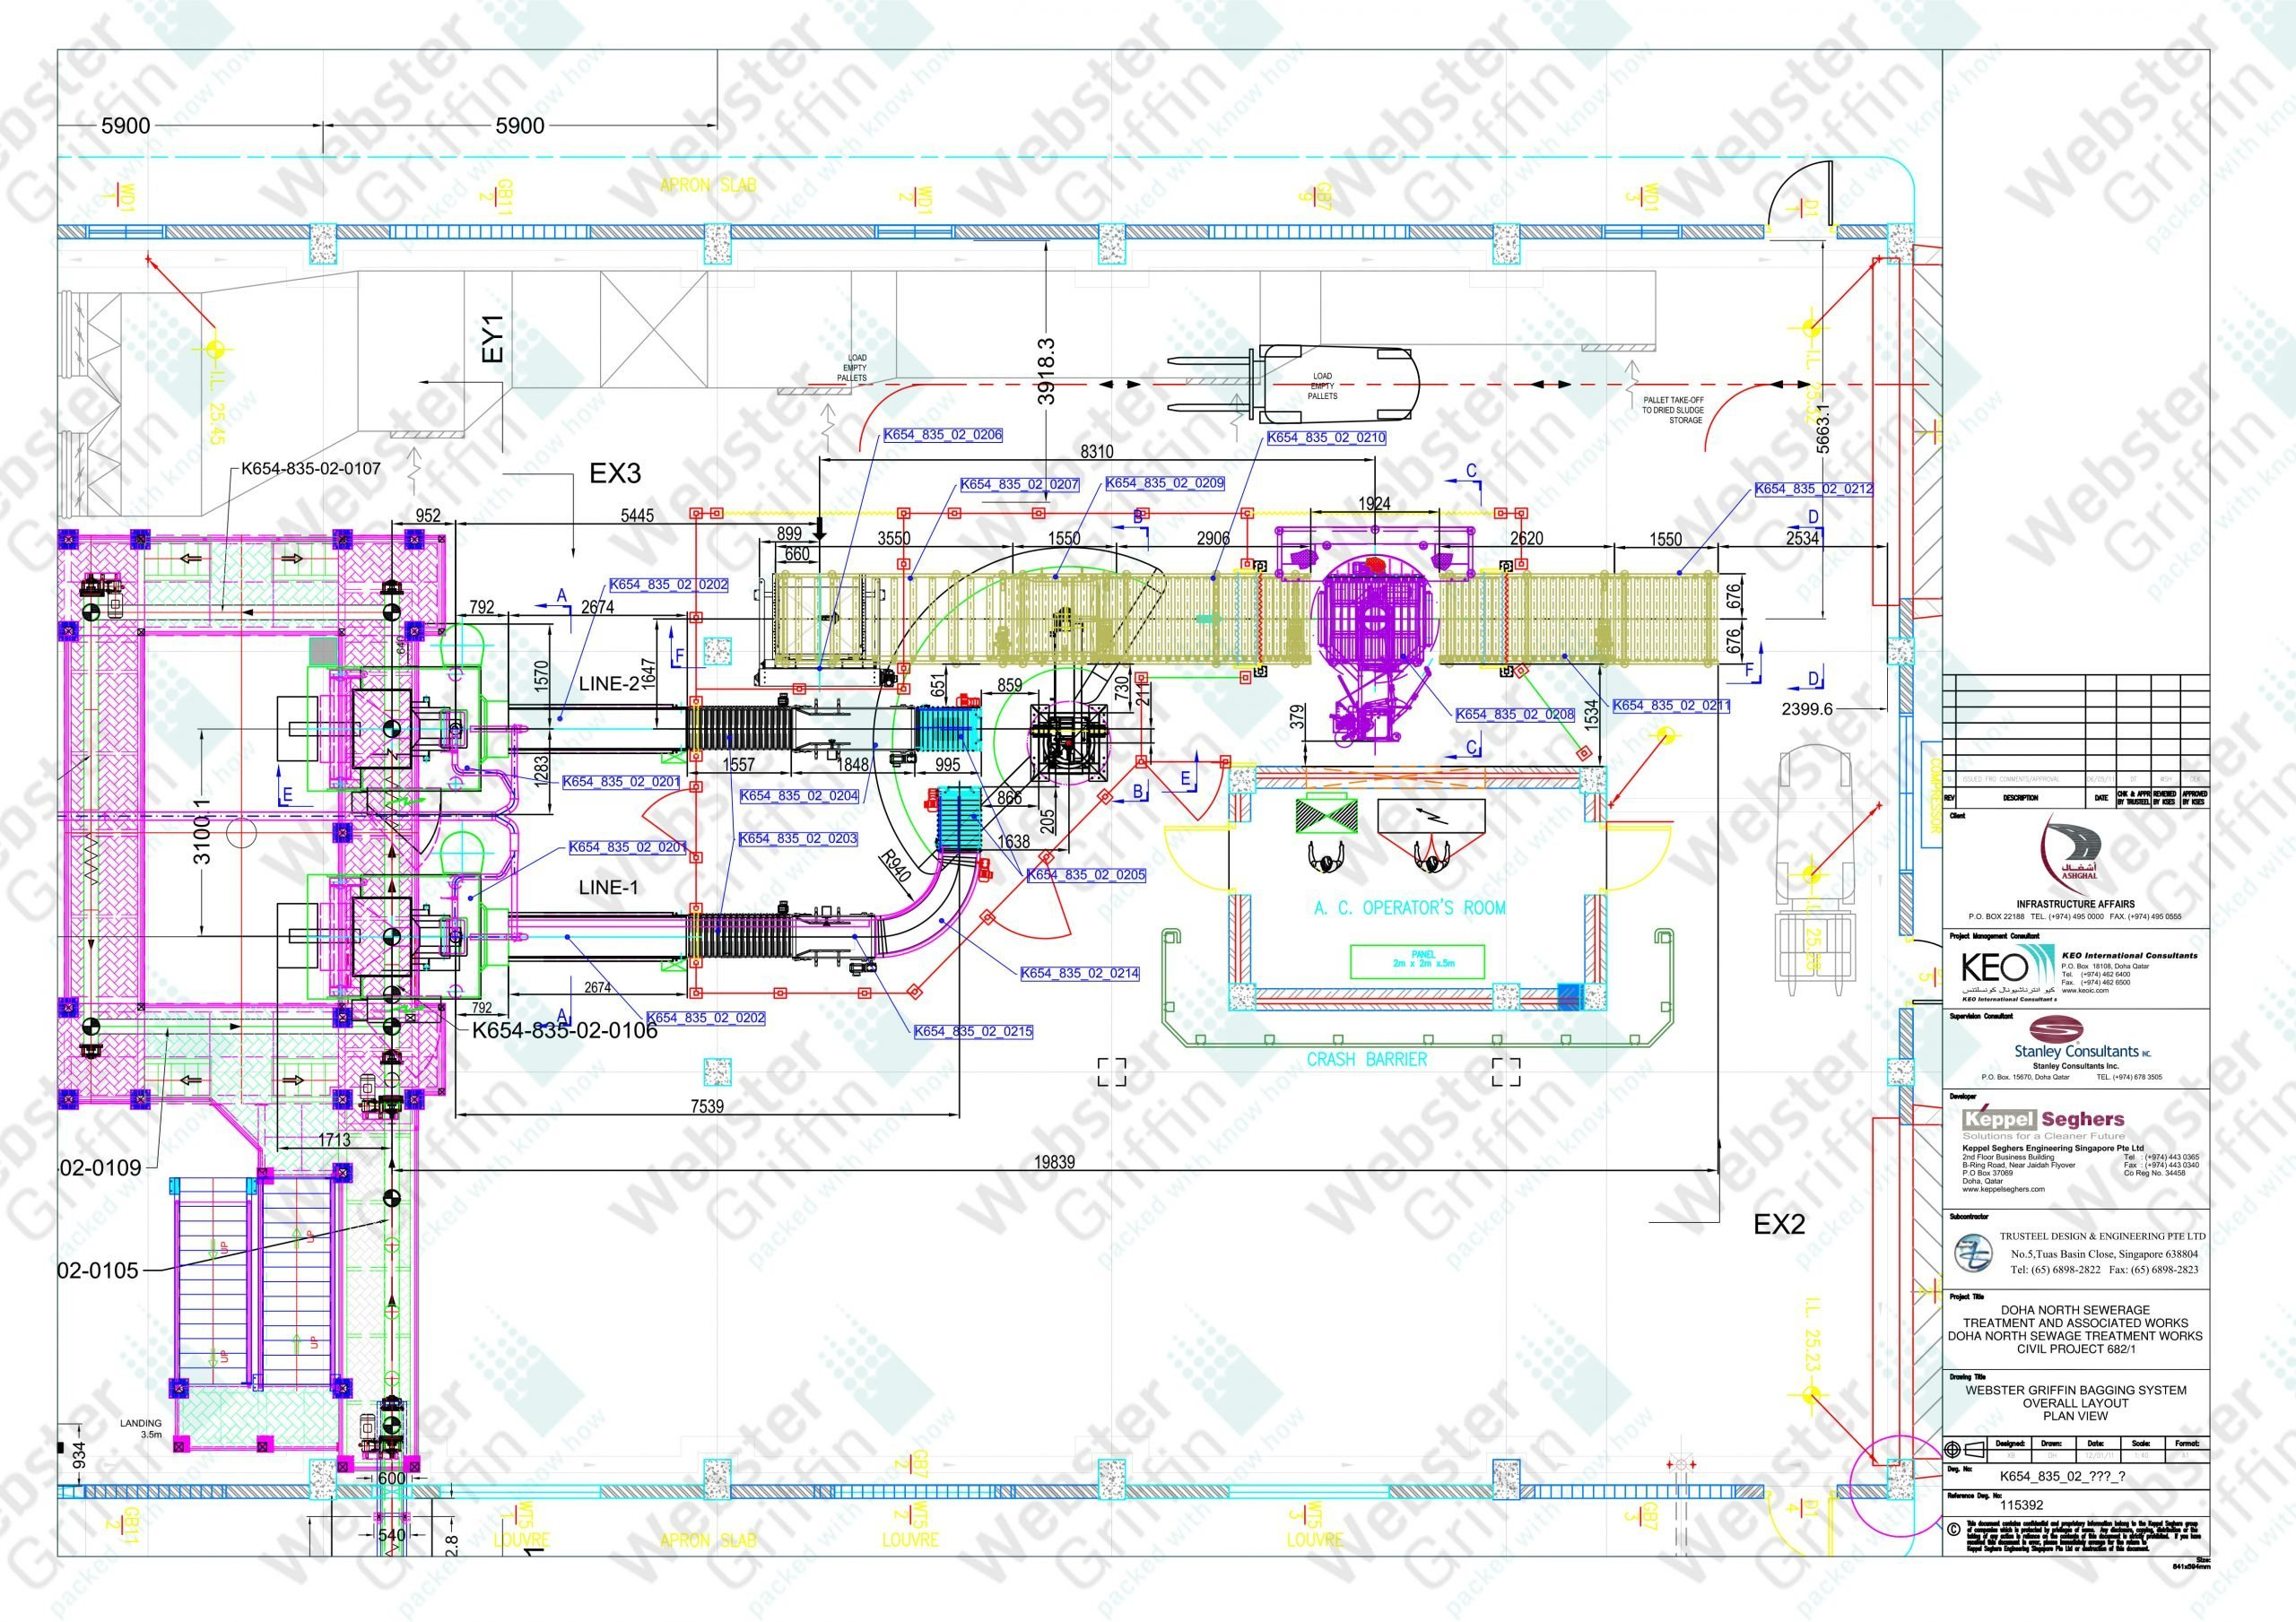 R:P- 0301 to 0400P-0384115392 PLAN VIEW (1)